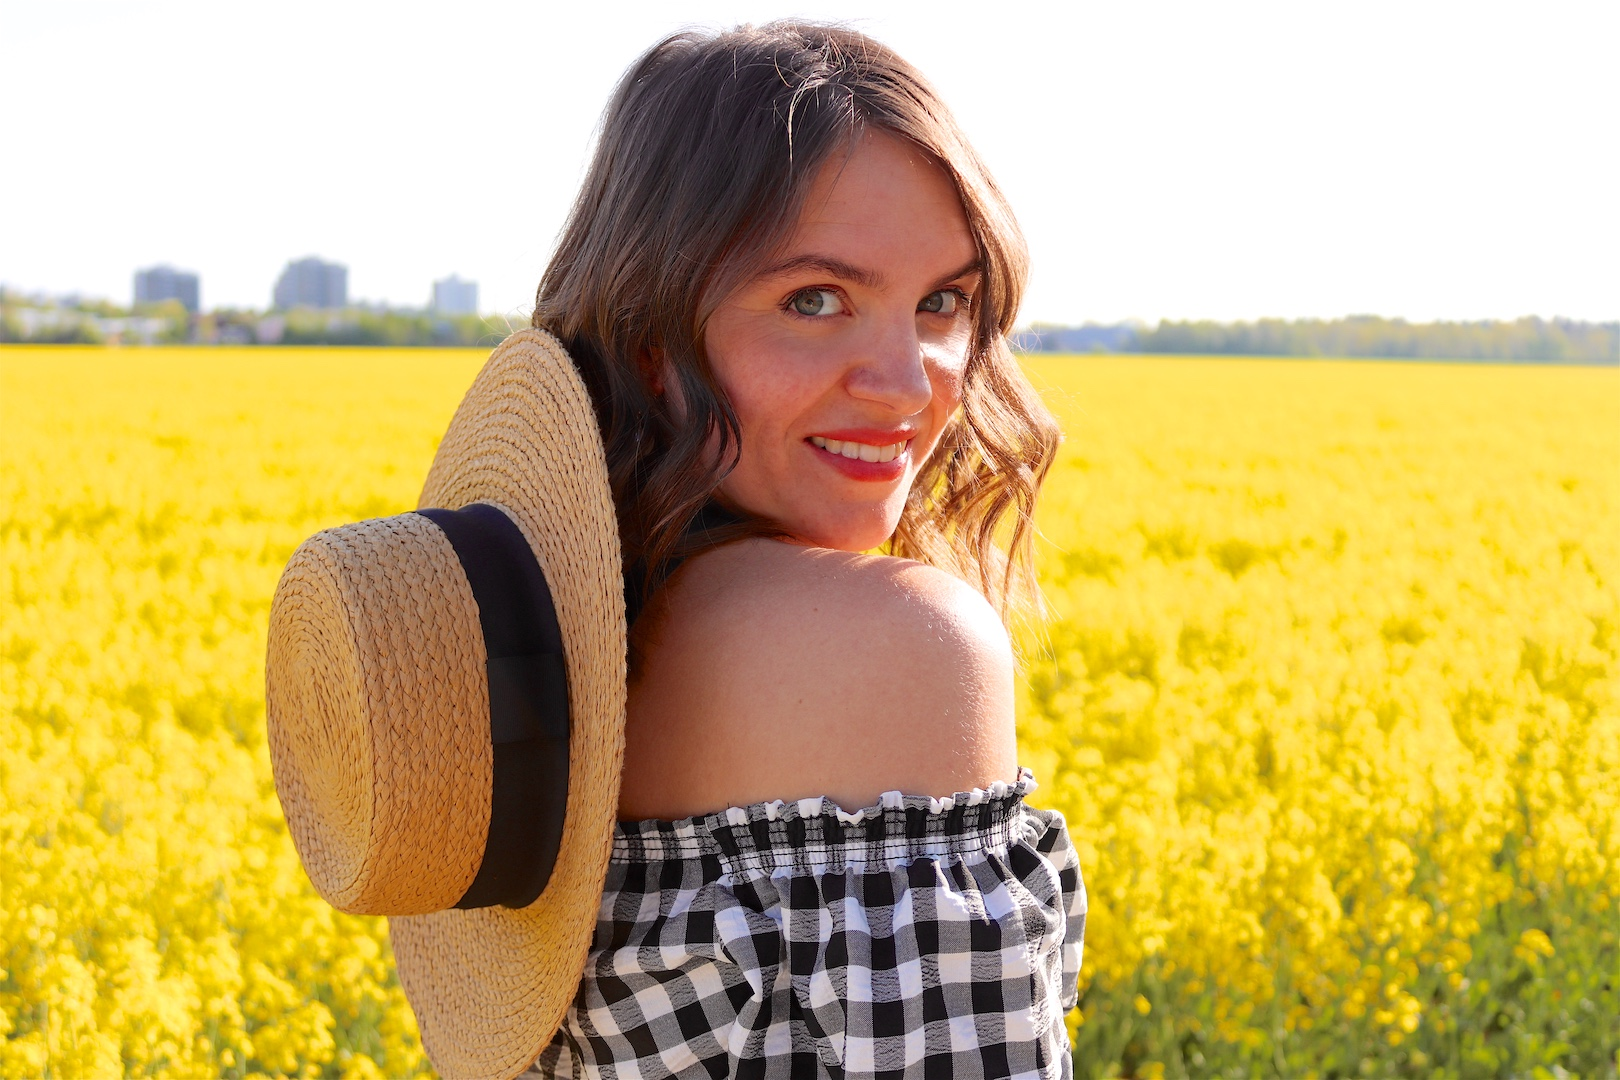 Canola Love. Fashion Blogger Girl by Style Blog Heartfelt Hunt. Girl with blond beach waves wearing an off-shoulder gingham blouse, black culotte, straw hat and straw bag.